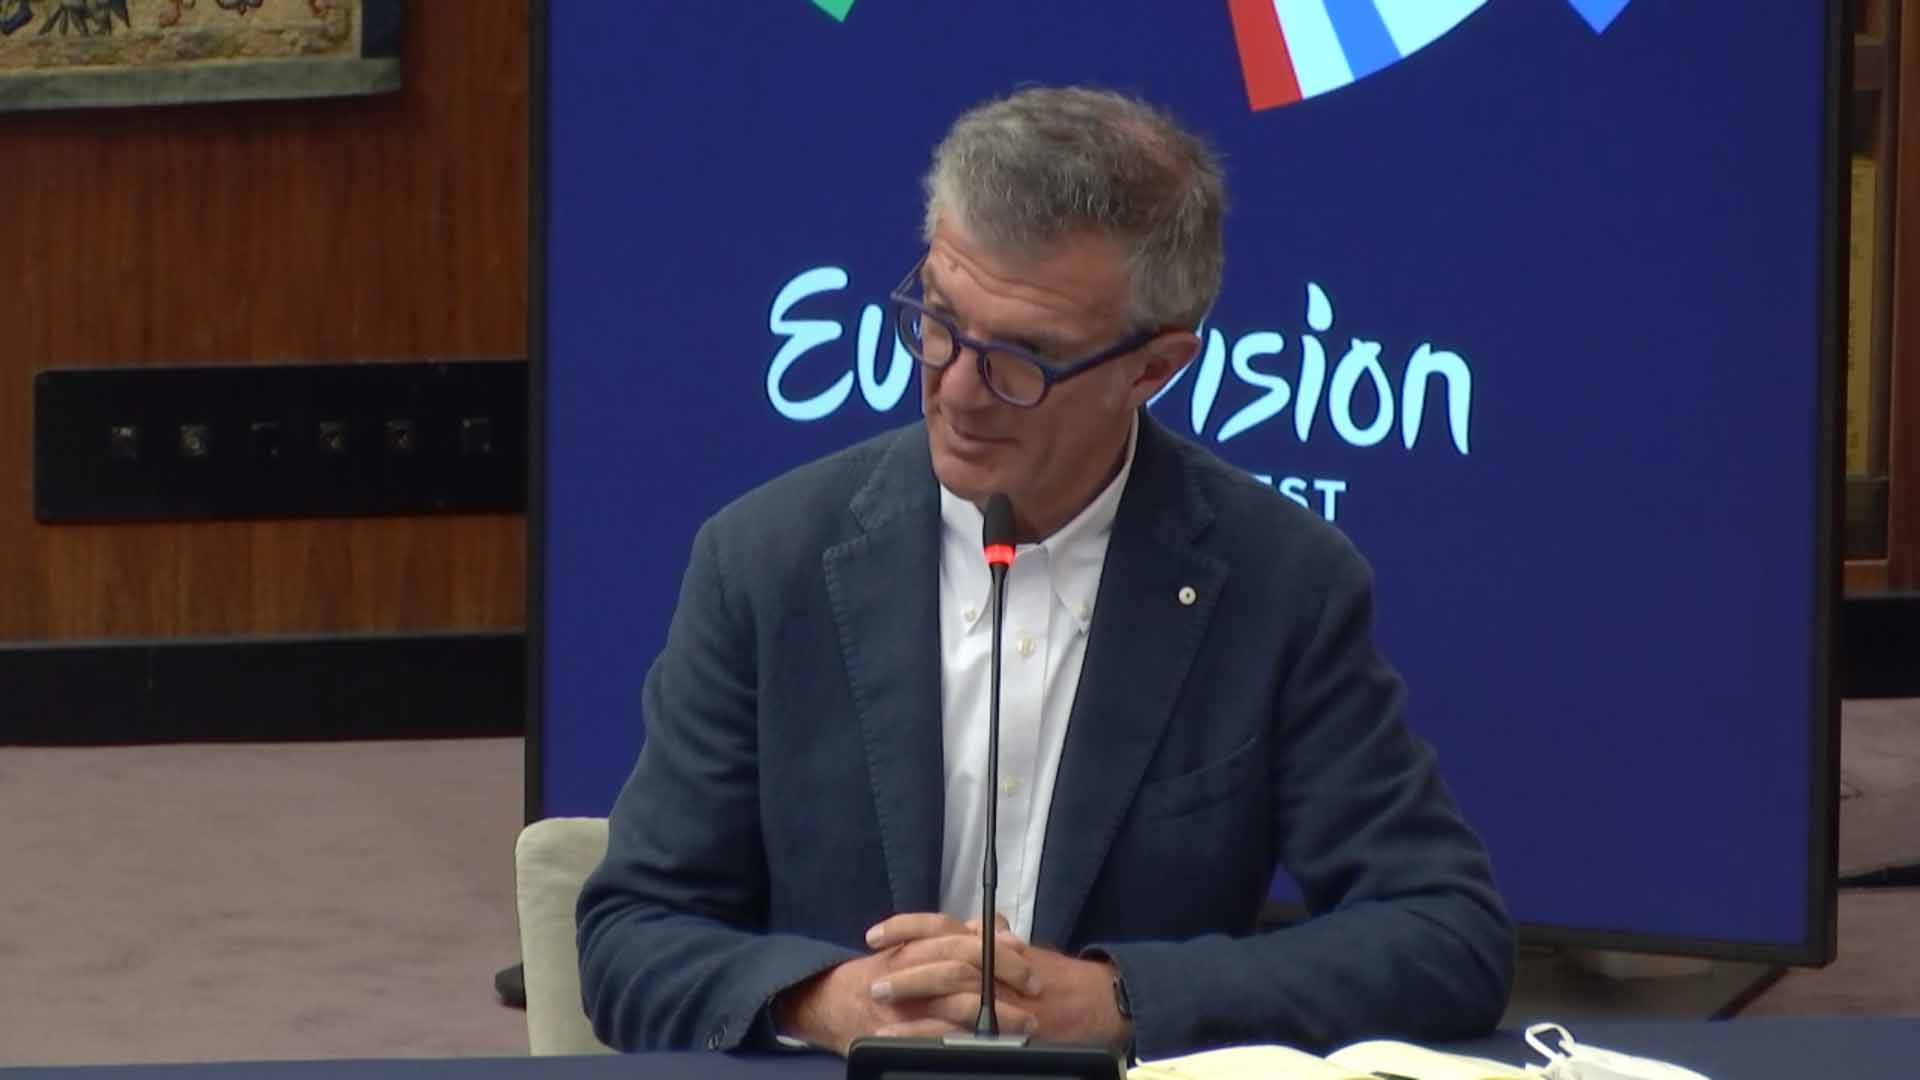 Eurovision Song Contest 2021 conferenza stampa